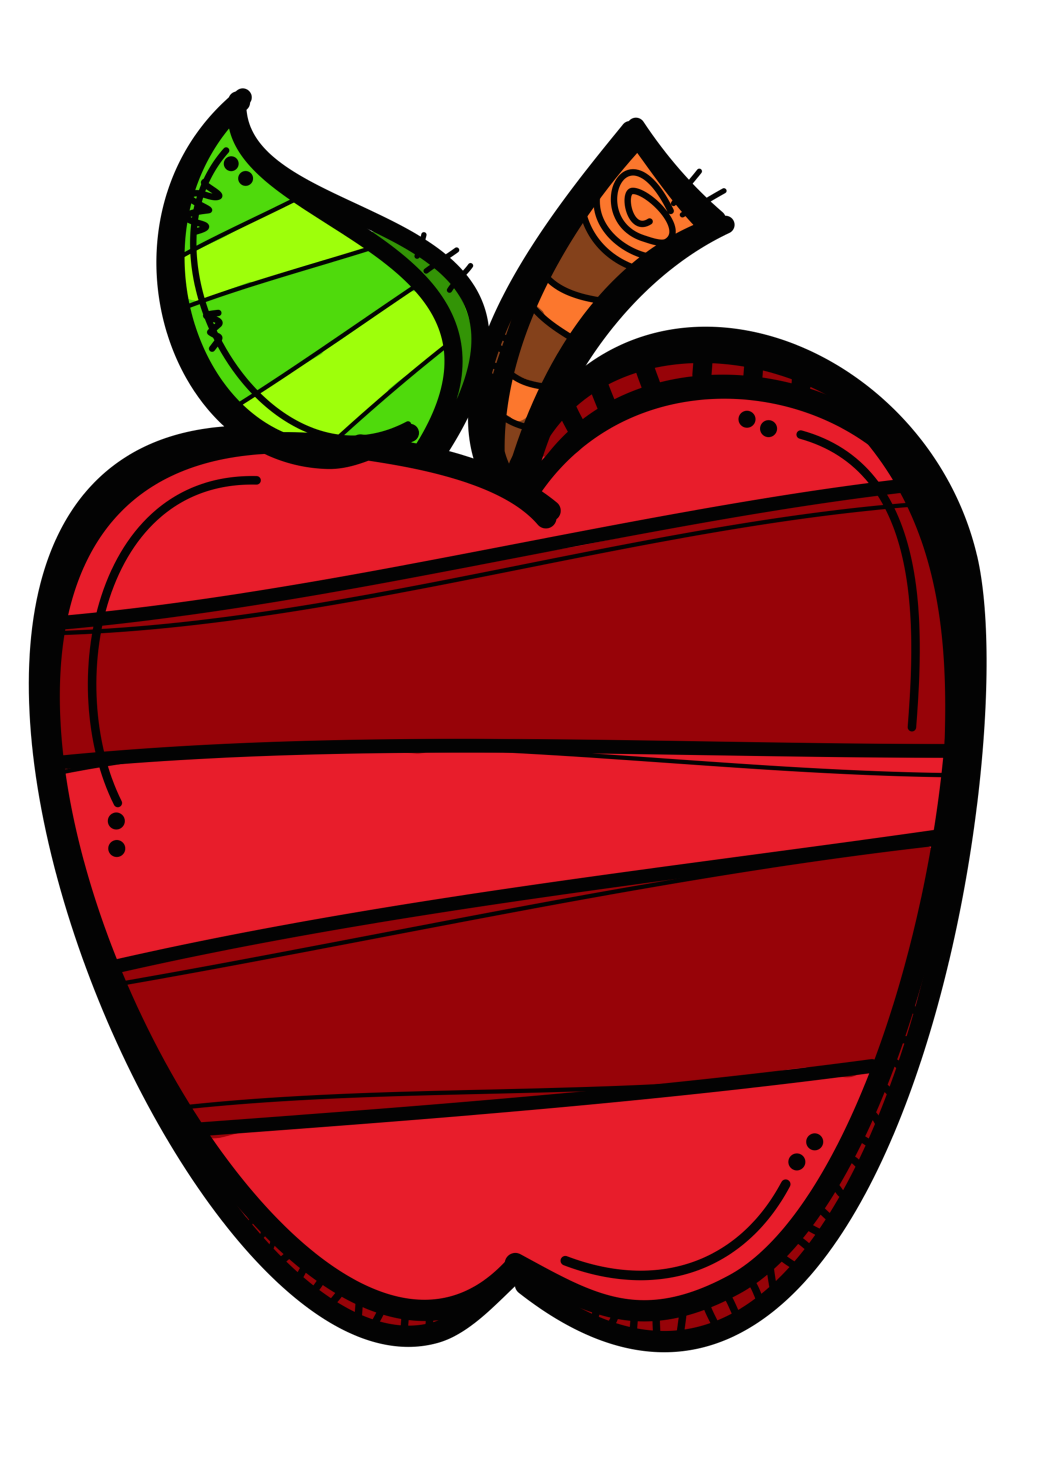 A+ apple clipart jpg royalty free library Content Material - Potomac Middle School jpg royalty free library